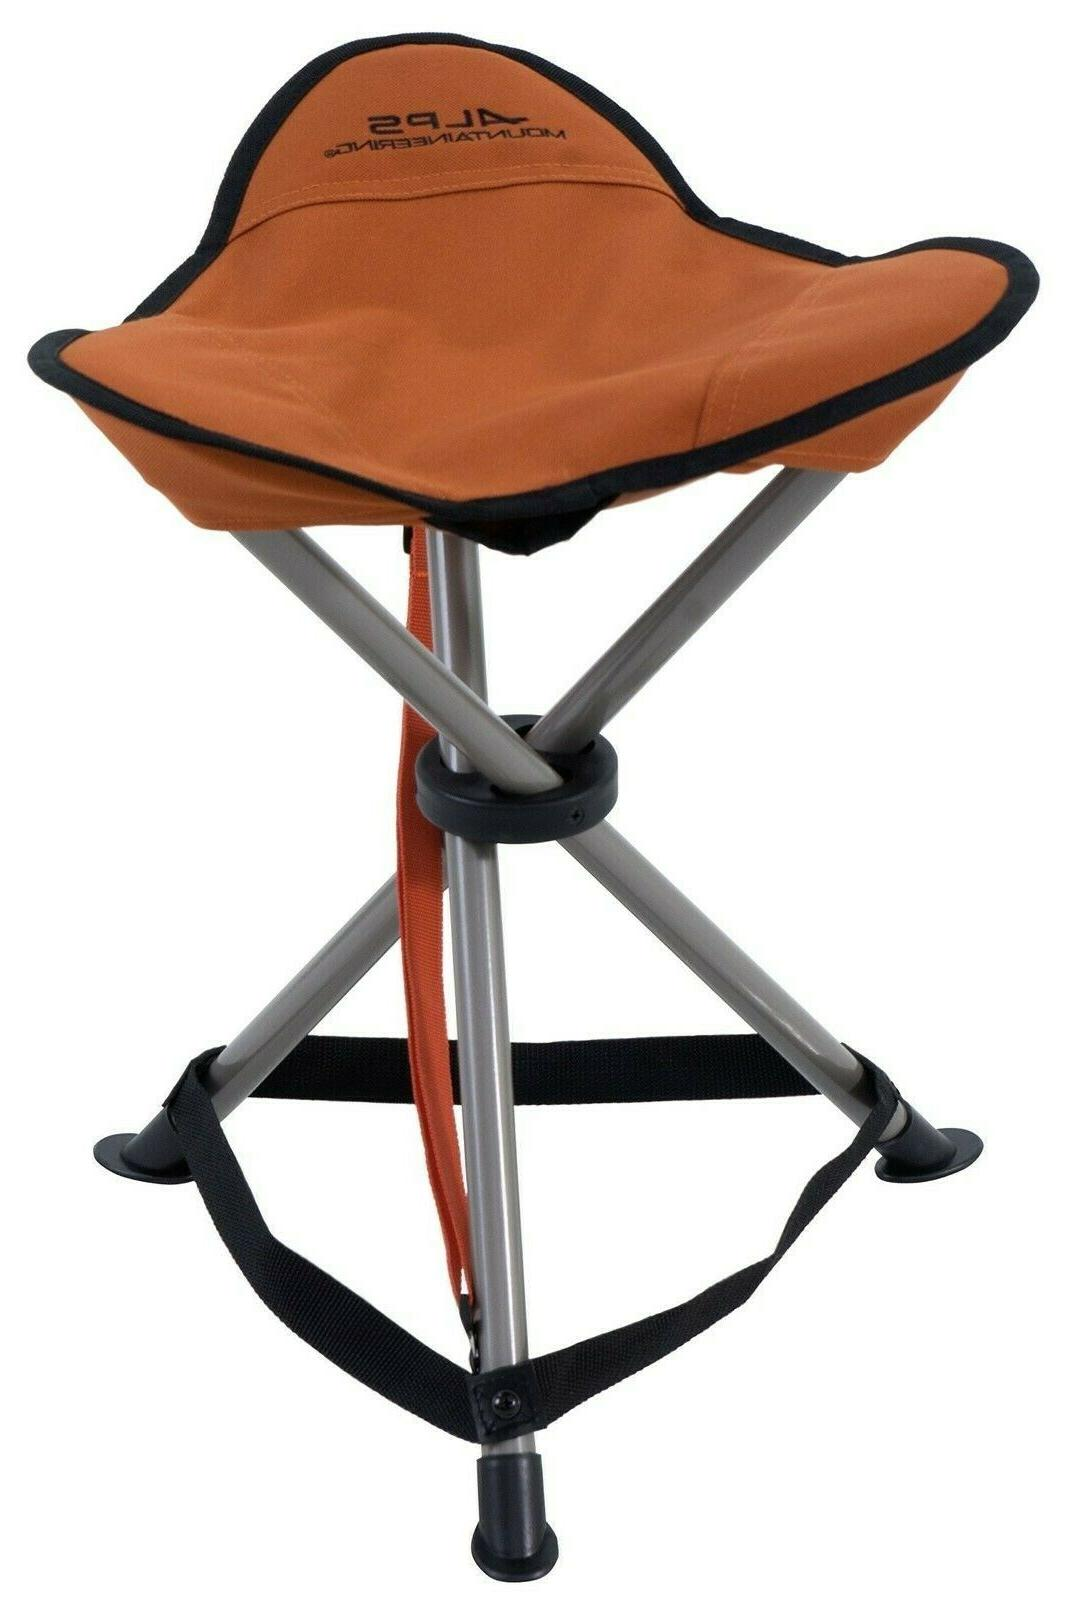 tri leg chair portable for outdoor camping